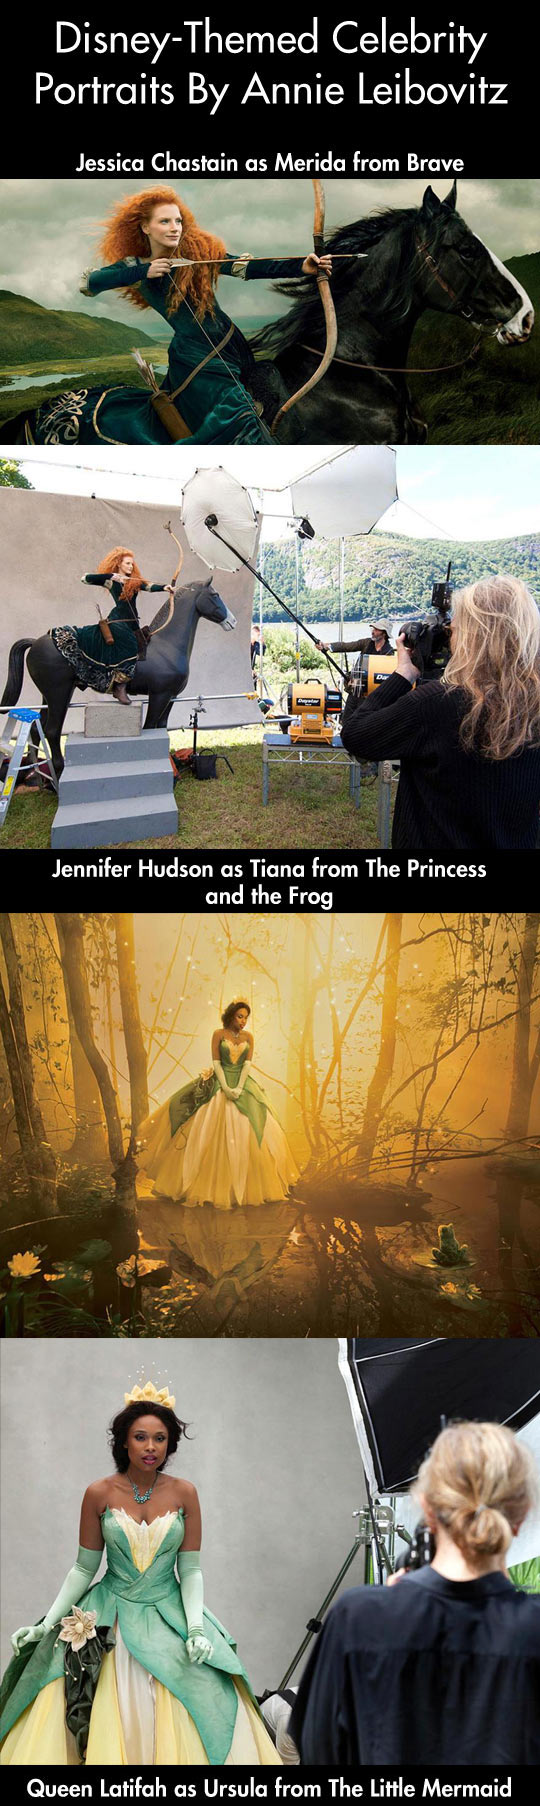 Famous actors photographed as Disney characters...